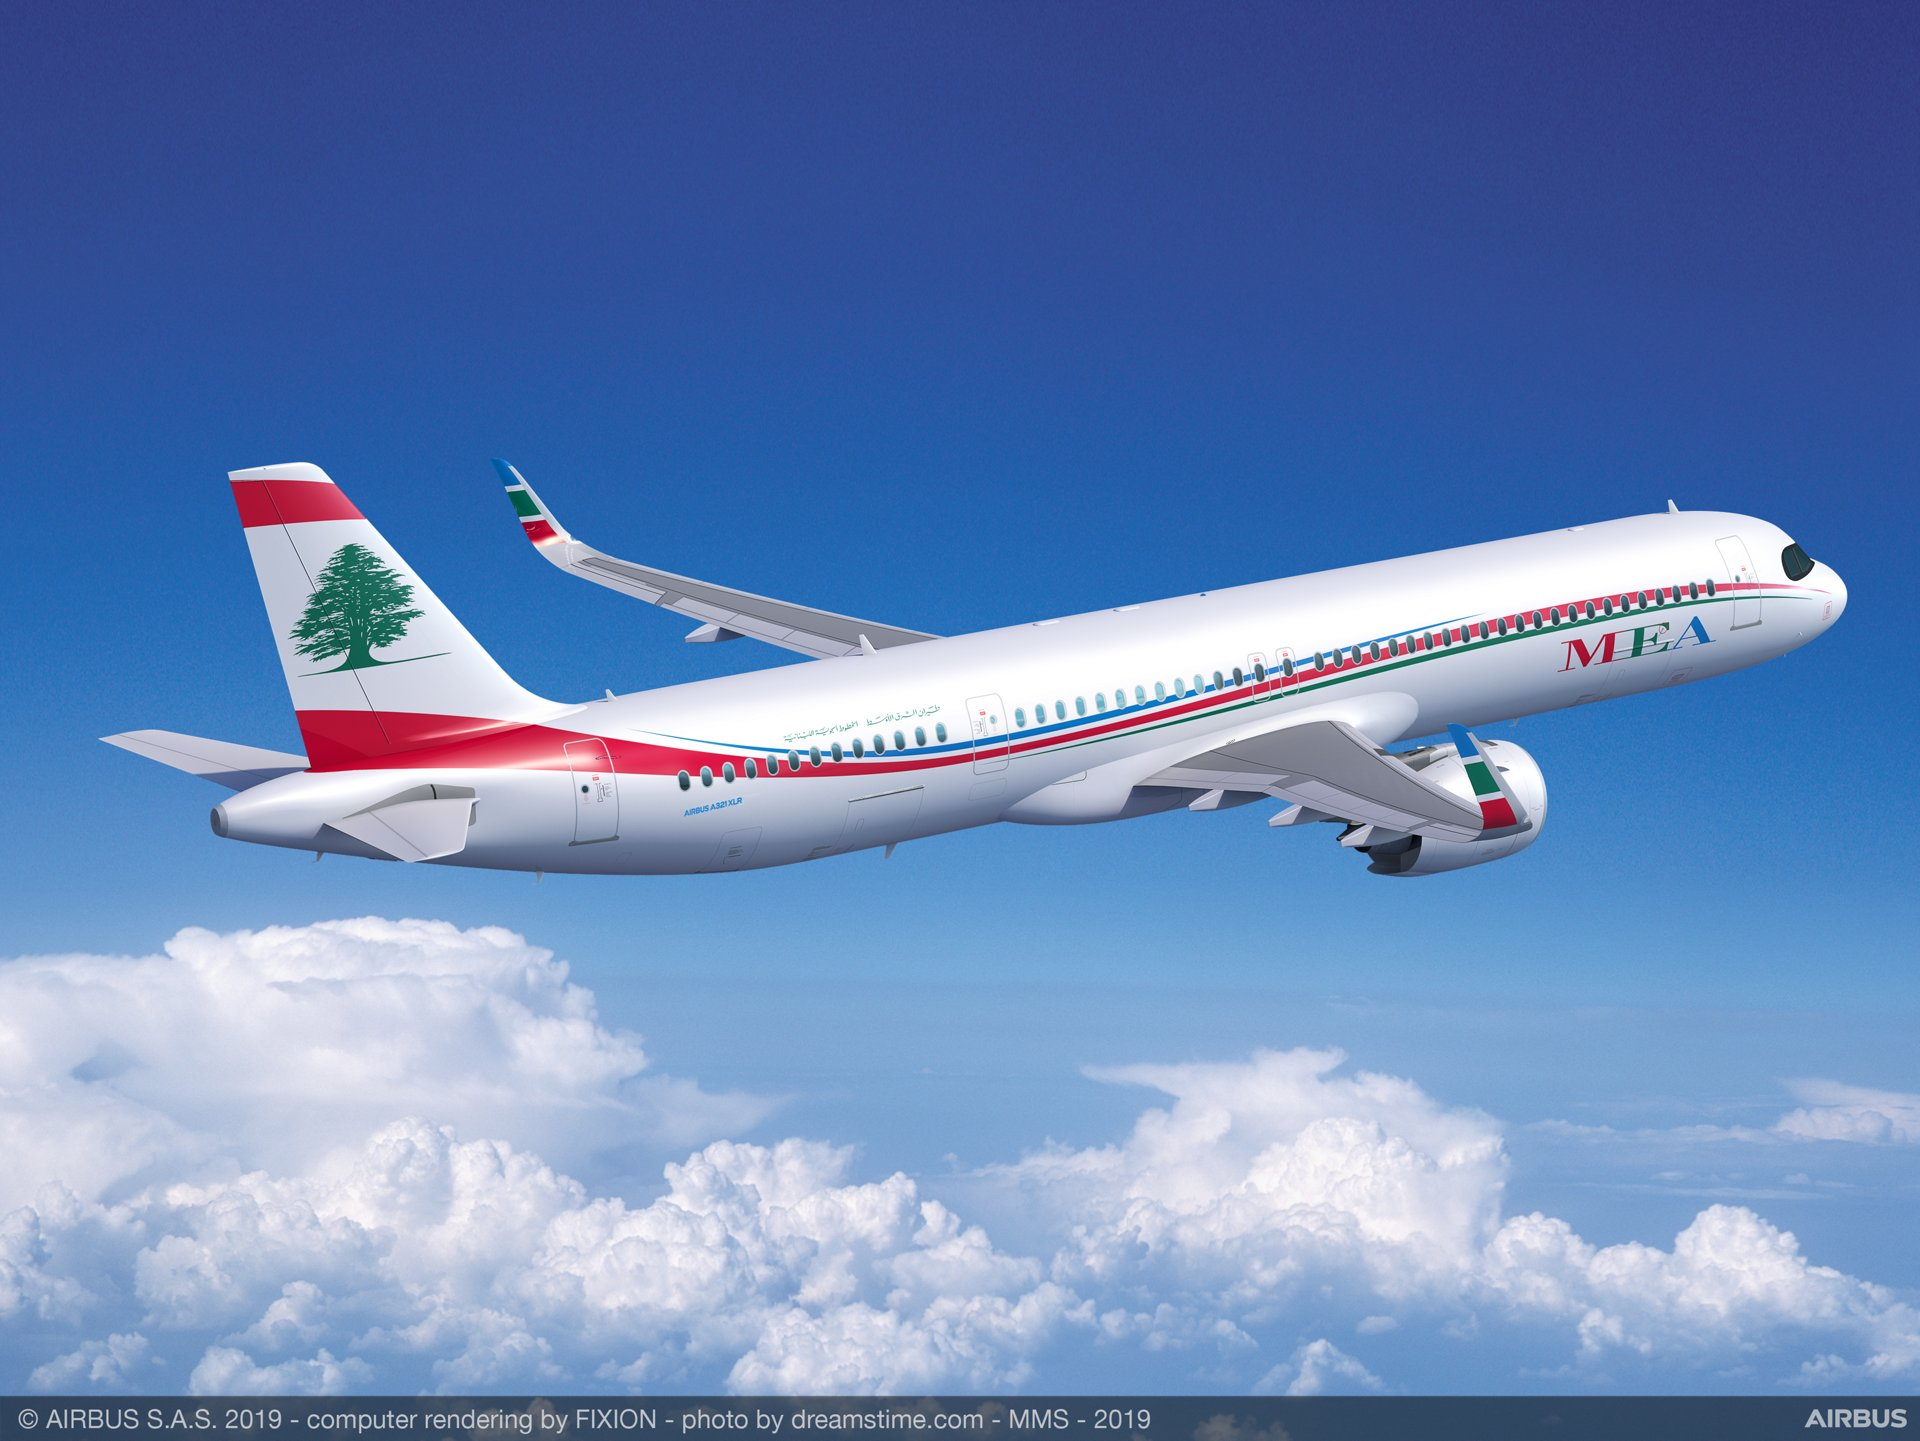 Lebanese flag carrier Middle East Airlines (MEA) became the launch airline customer for Airbus' A321XLR with a firm order for four aircraft